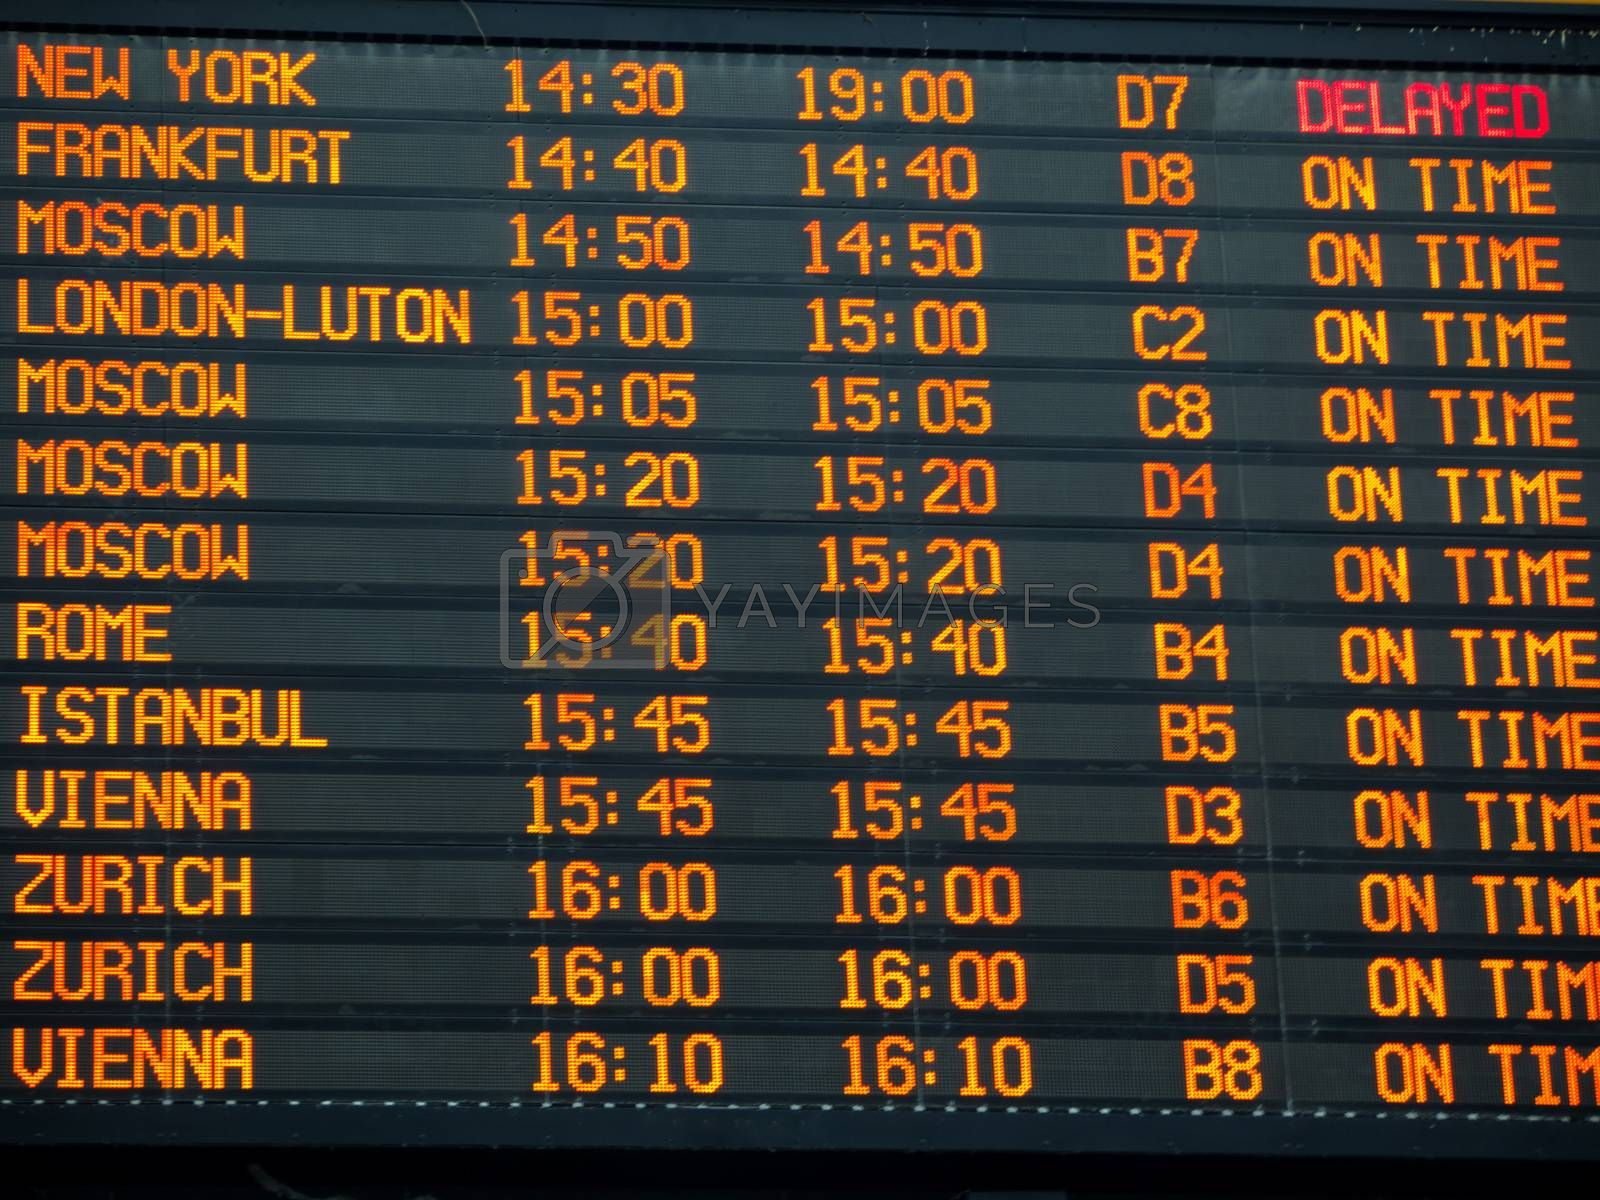 Flights information board with arrivals and departures details  in an international  airport terminal